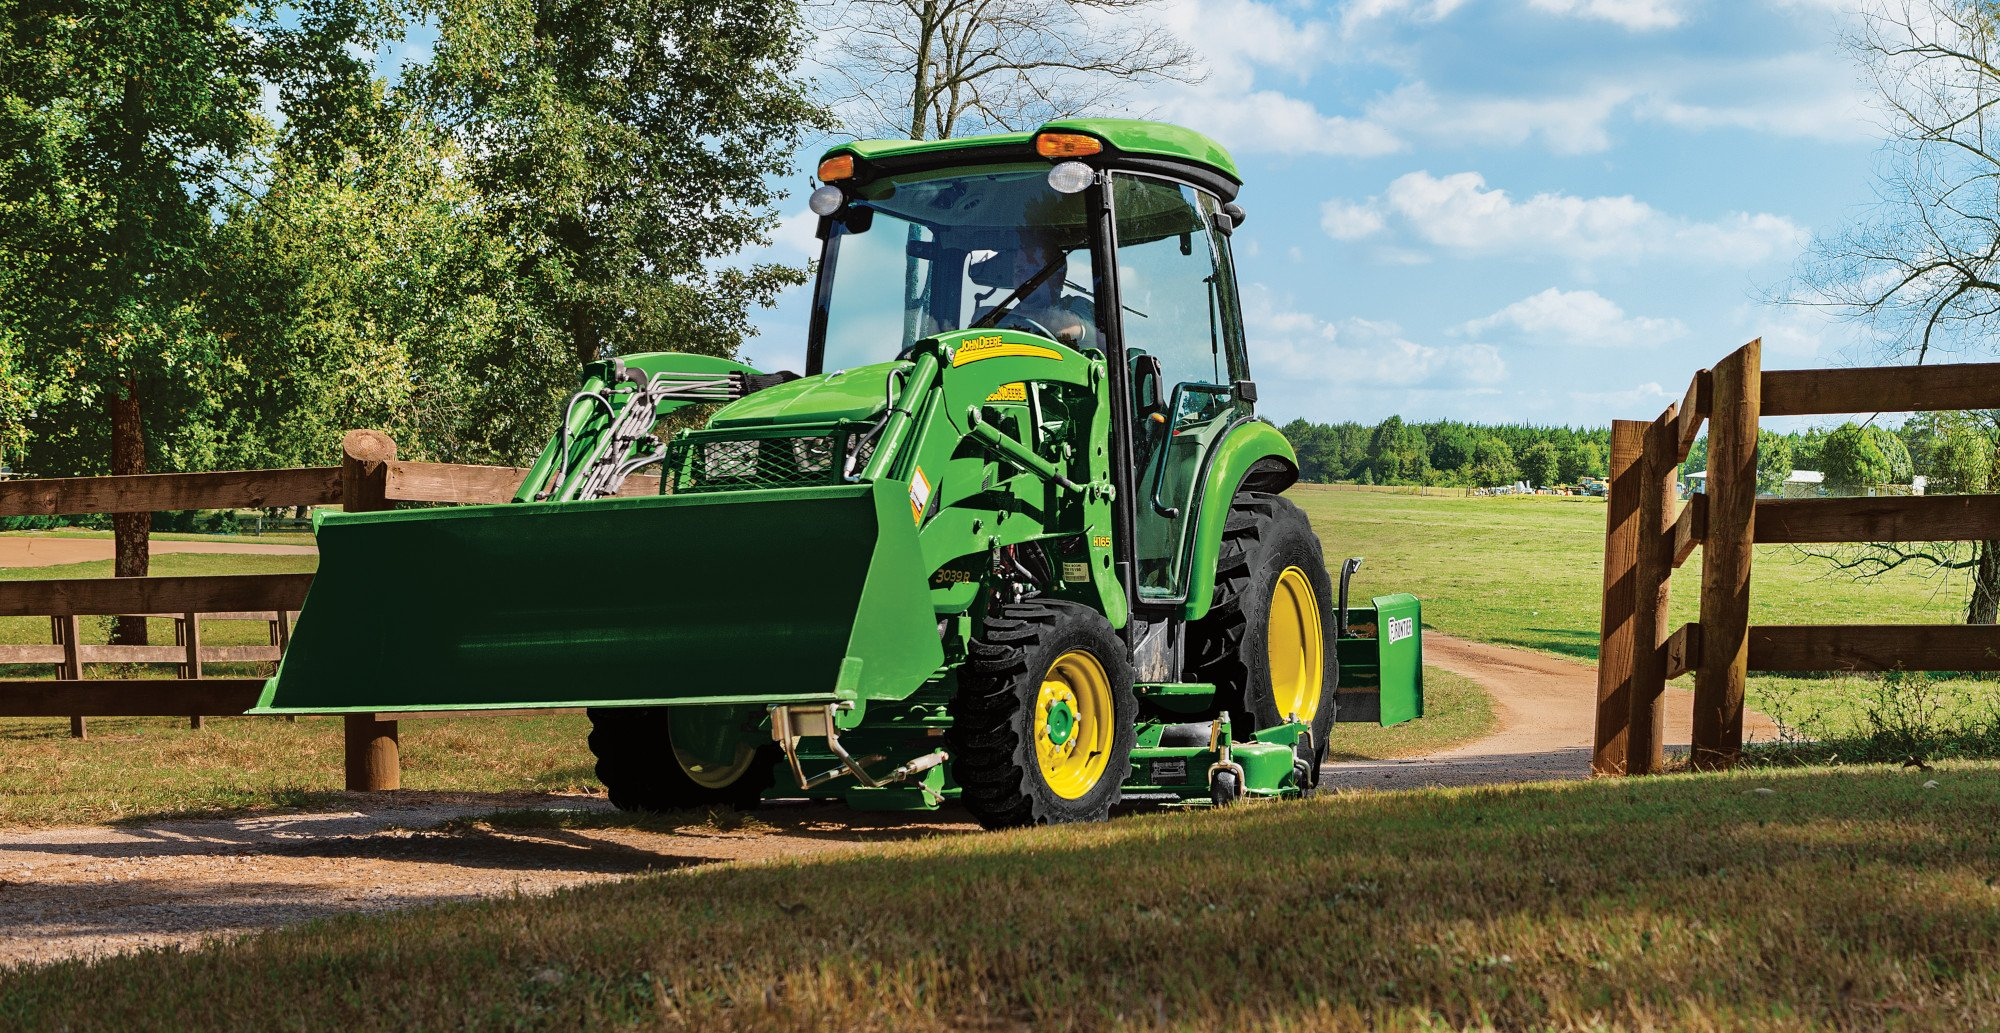 3046R with loader and mower deck